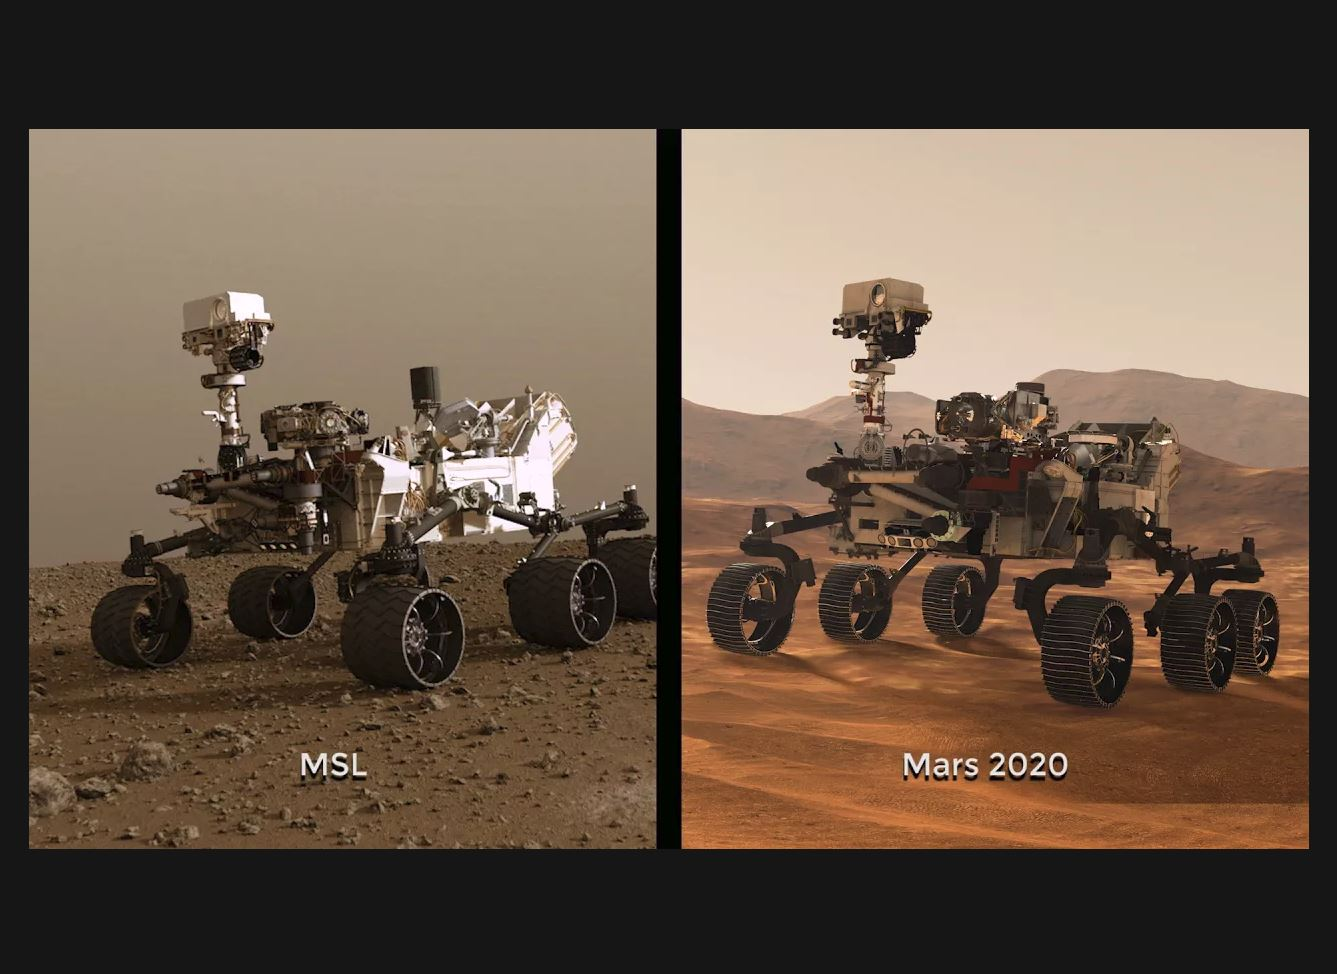 see the image 'NASA Begins Building its Next Mars Rover Mission'